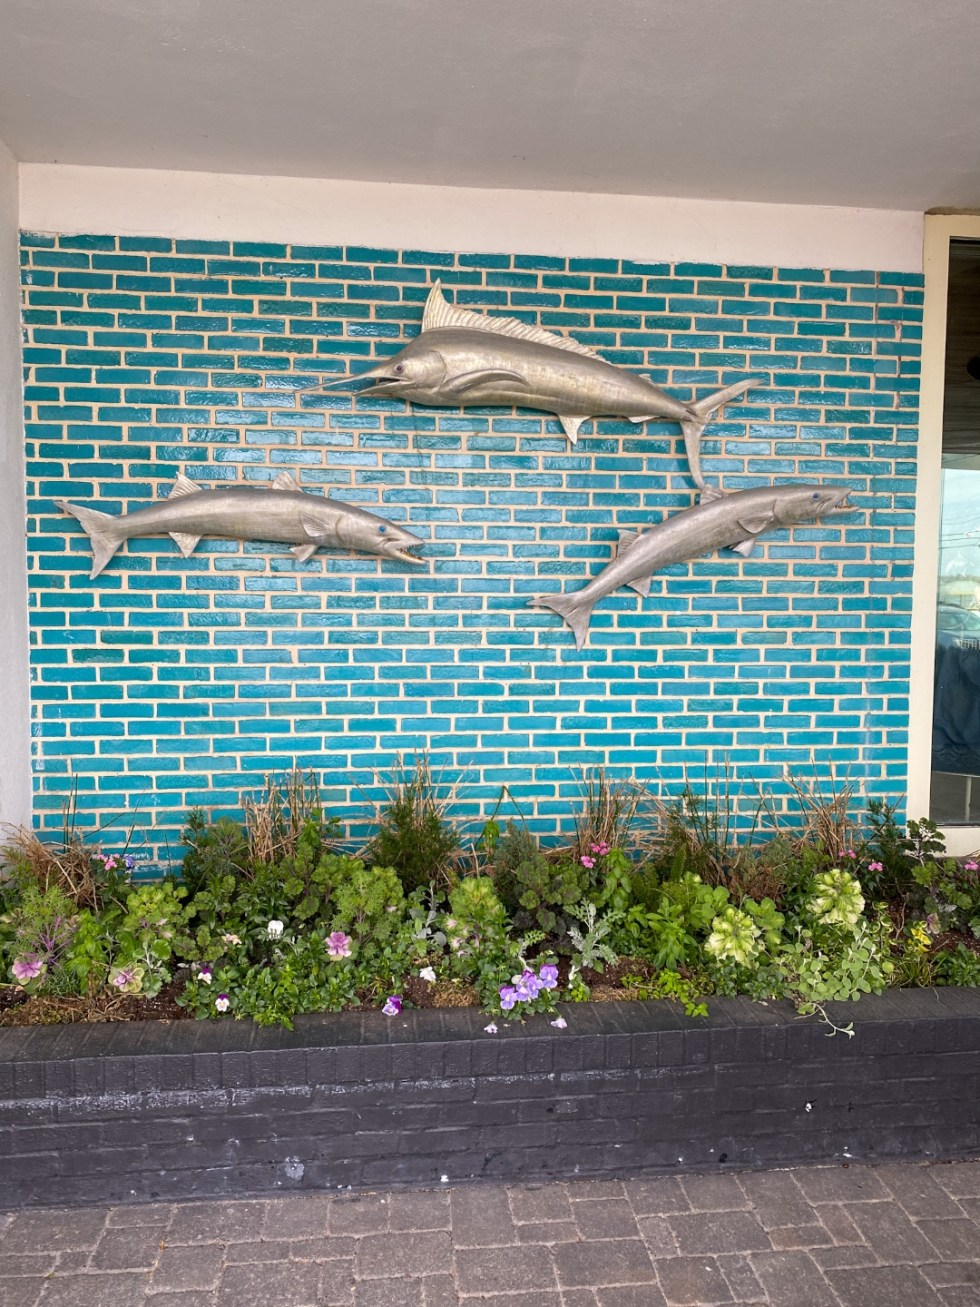 A Spring Weekend in Wilmington, NC: the Best Things to Do - I'm Fixin' To - @imfixintoblog |Weekend in Wilmington by popular NC travel blog, I'm Fixin' To: image of metal fish decor mounted onto a wall with blue subway tile.